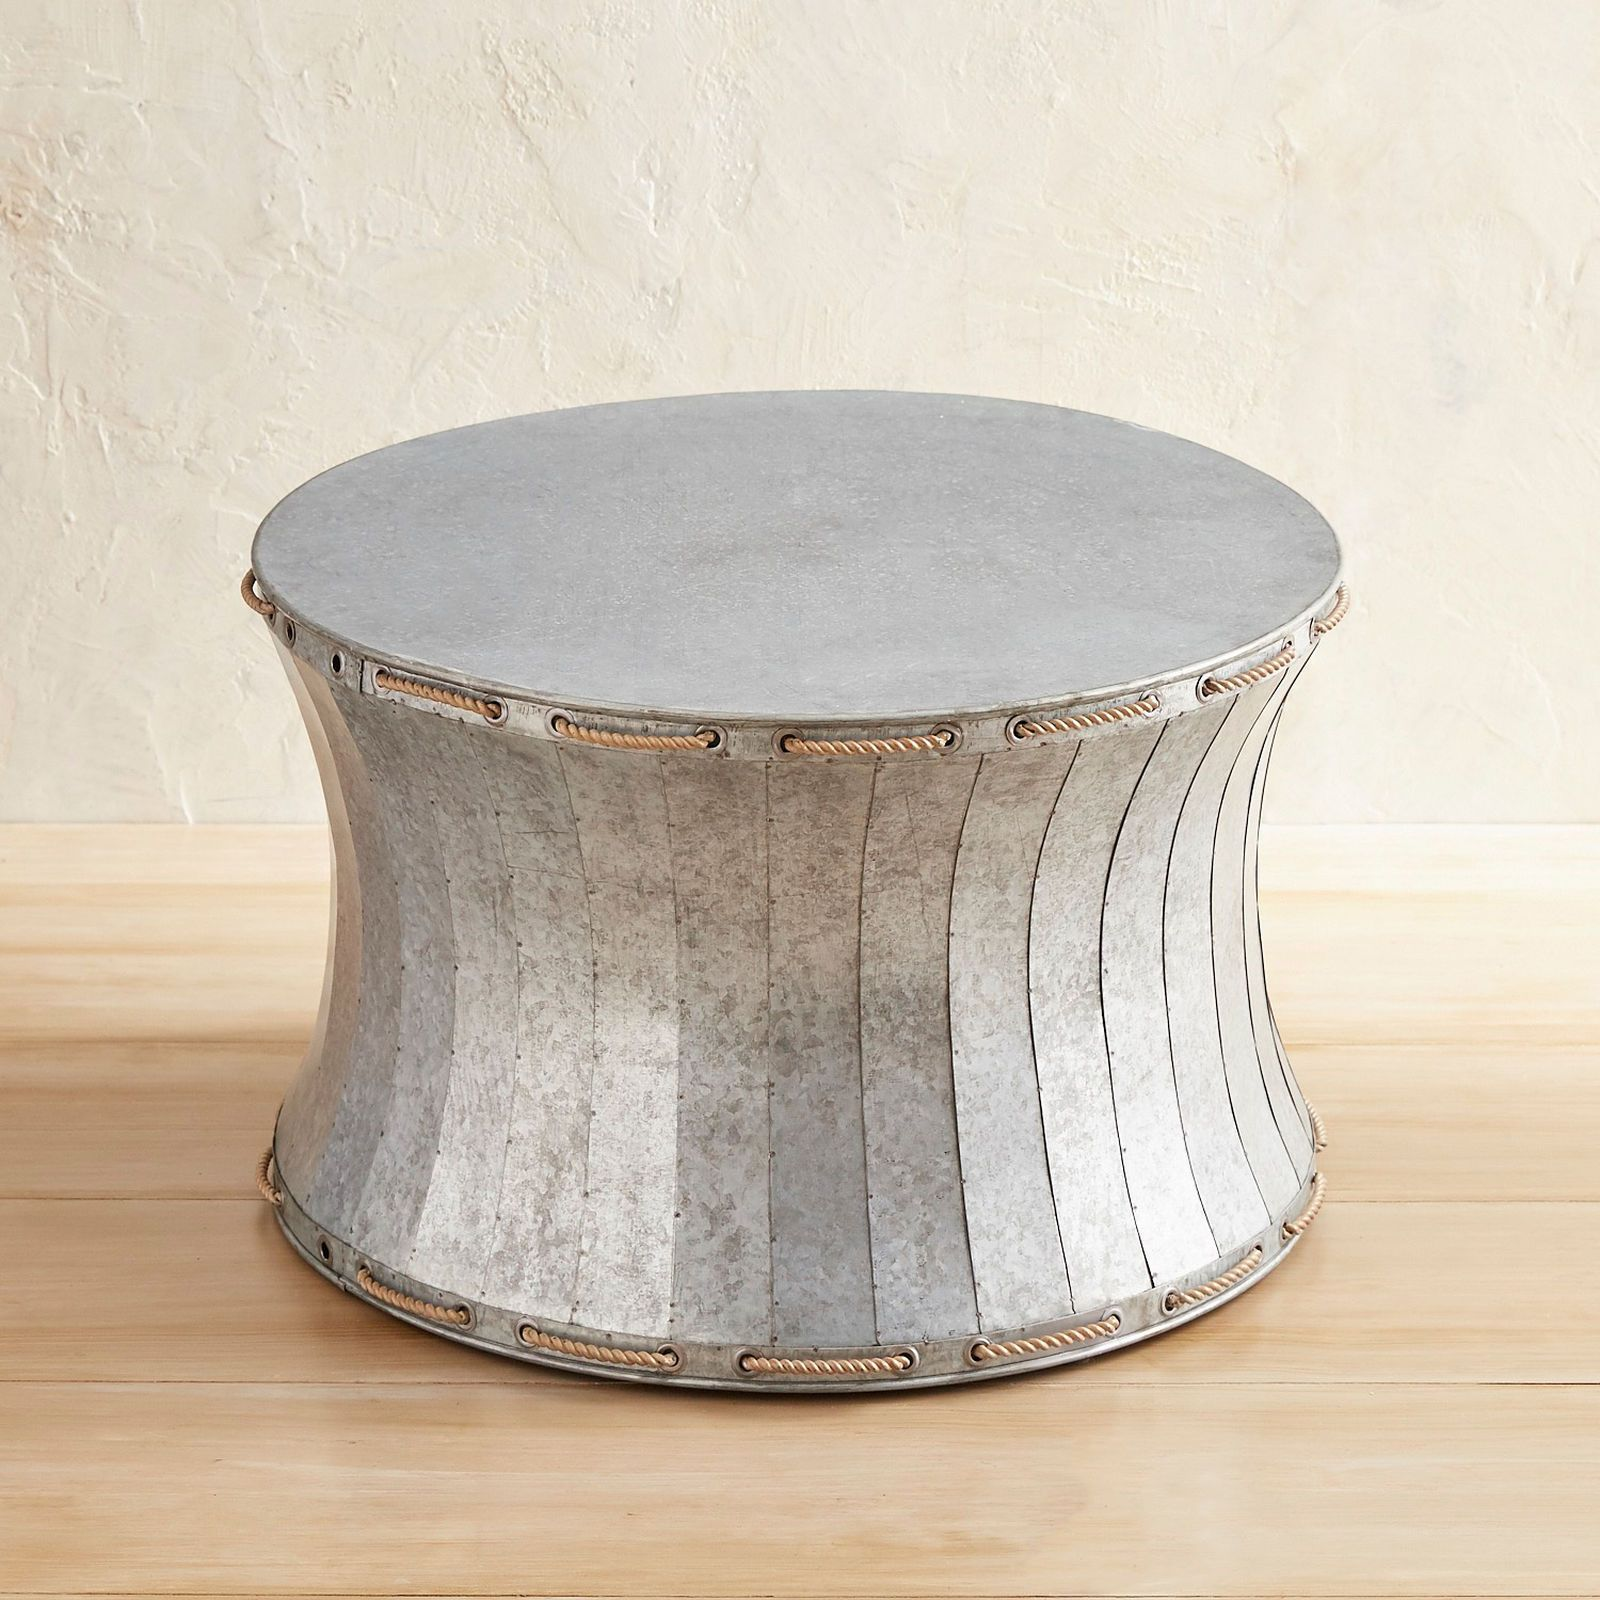 galvanized drum coffee table patio outdoor side pier imports dale tiffany torchiere floor lamp nautical lighting sconces nesting cocktail tables nest mid century modern dining and